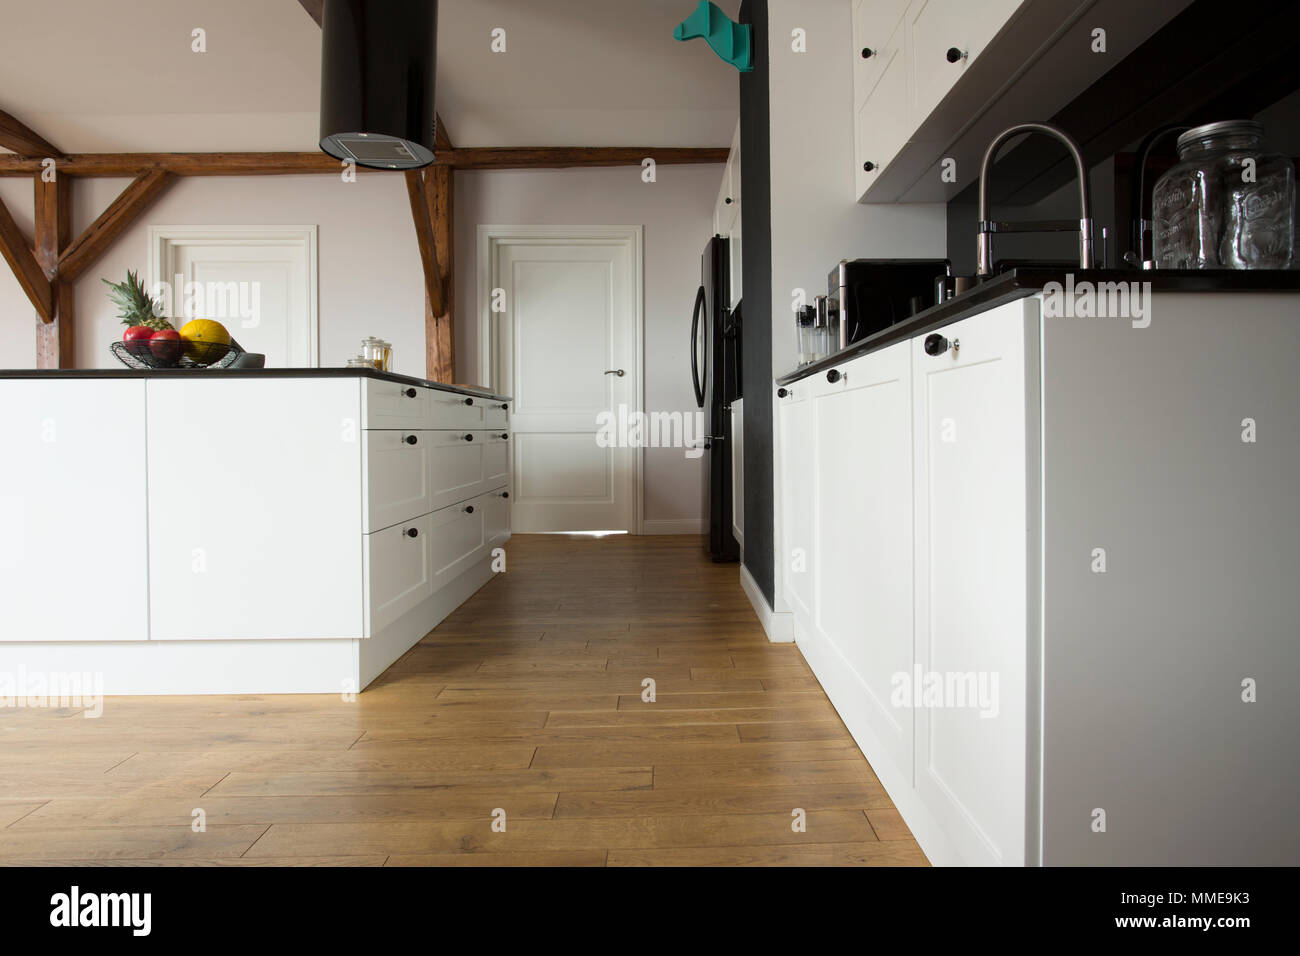 Low Angle View Of A Modern Kitchen Interior With Wooden Floor